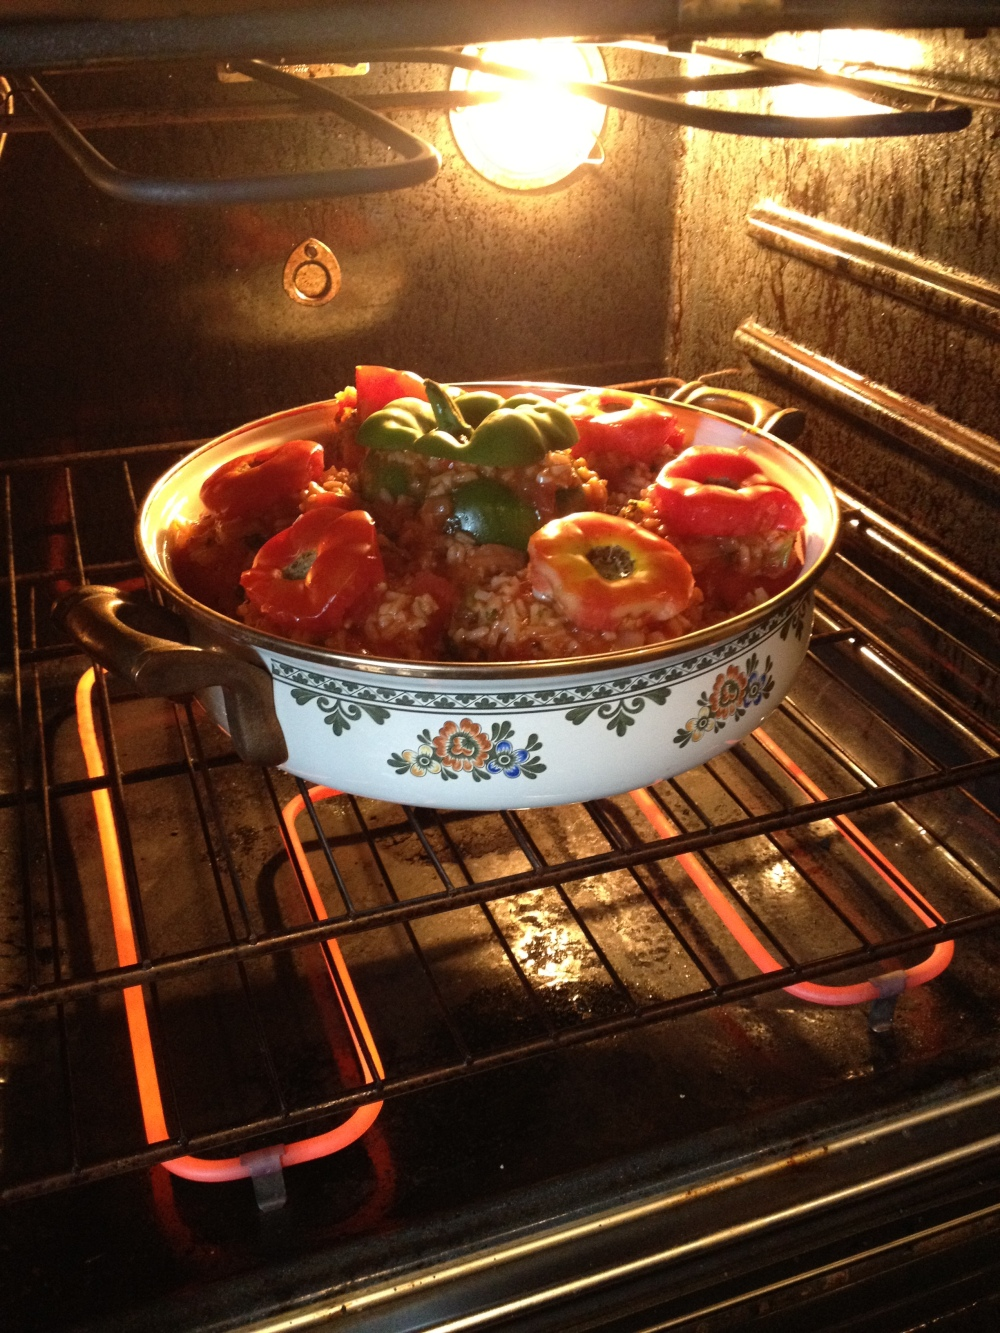 Stuffed Toms in oven